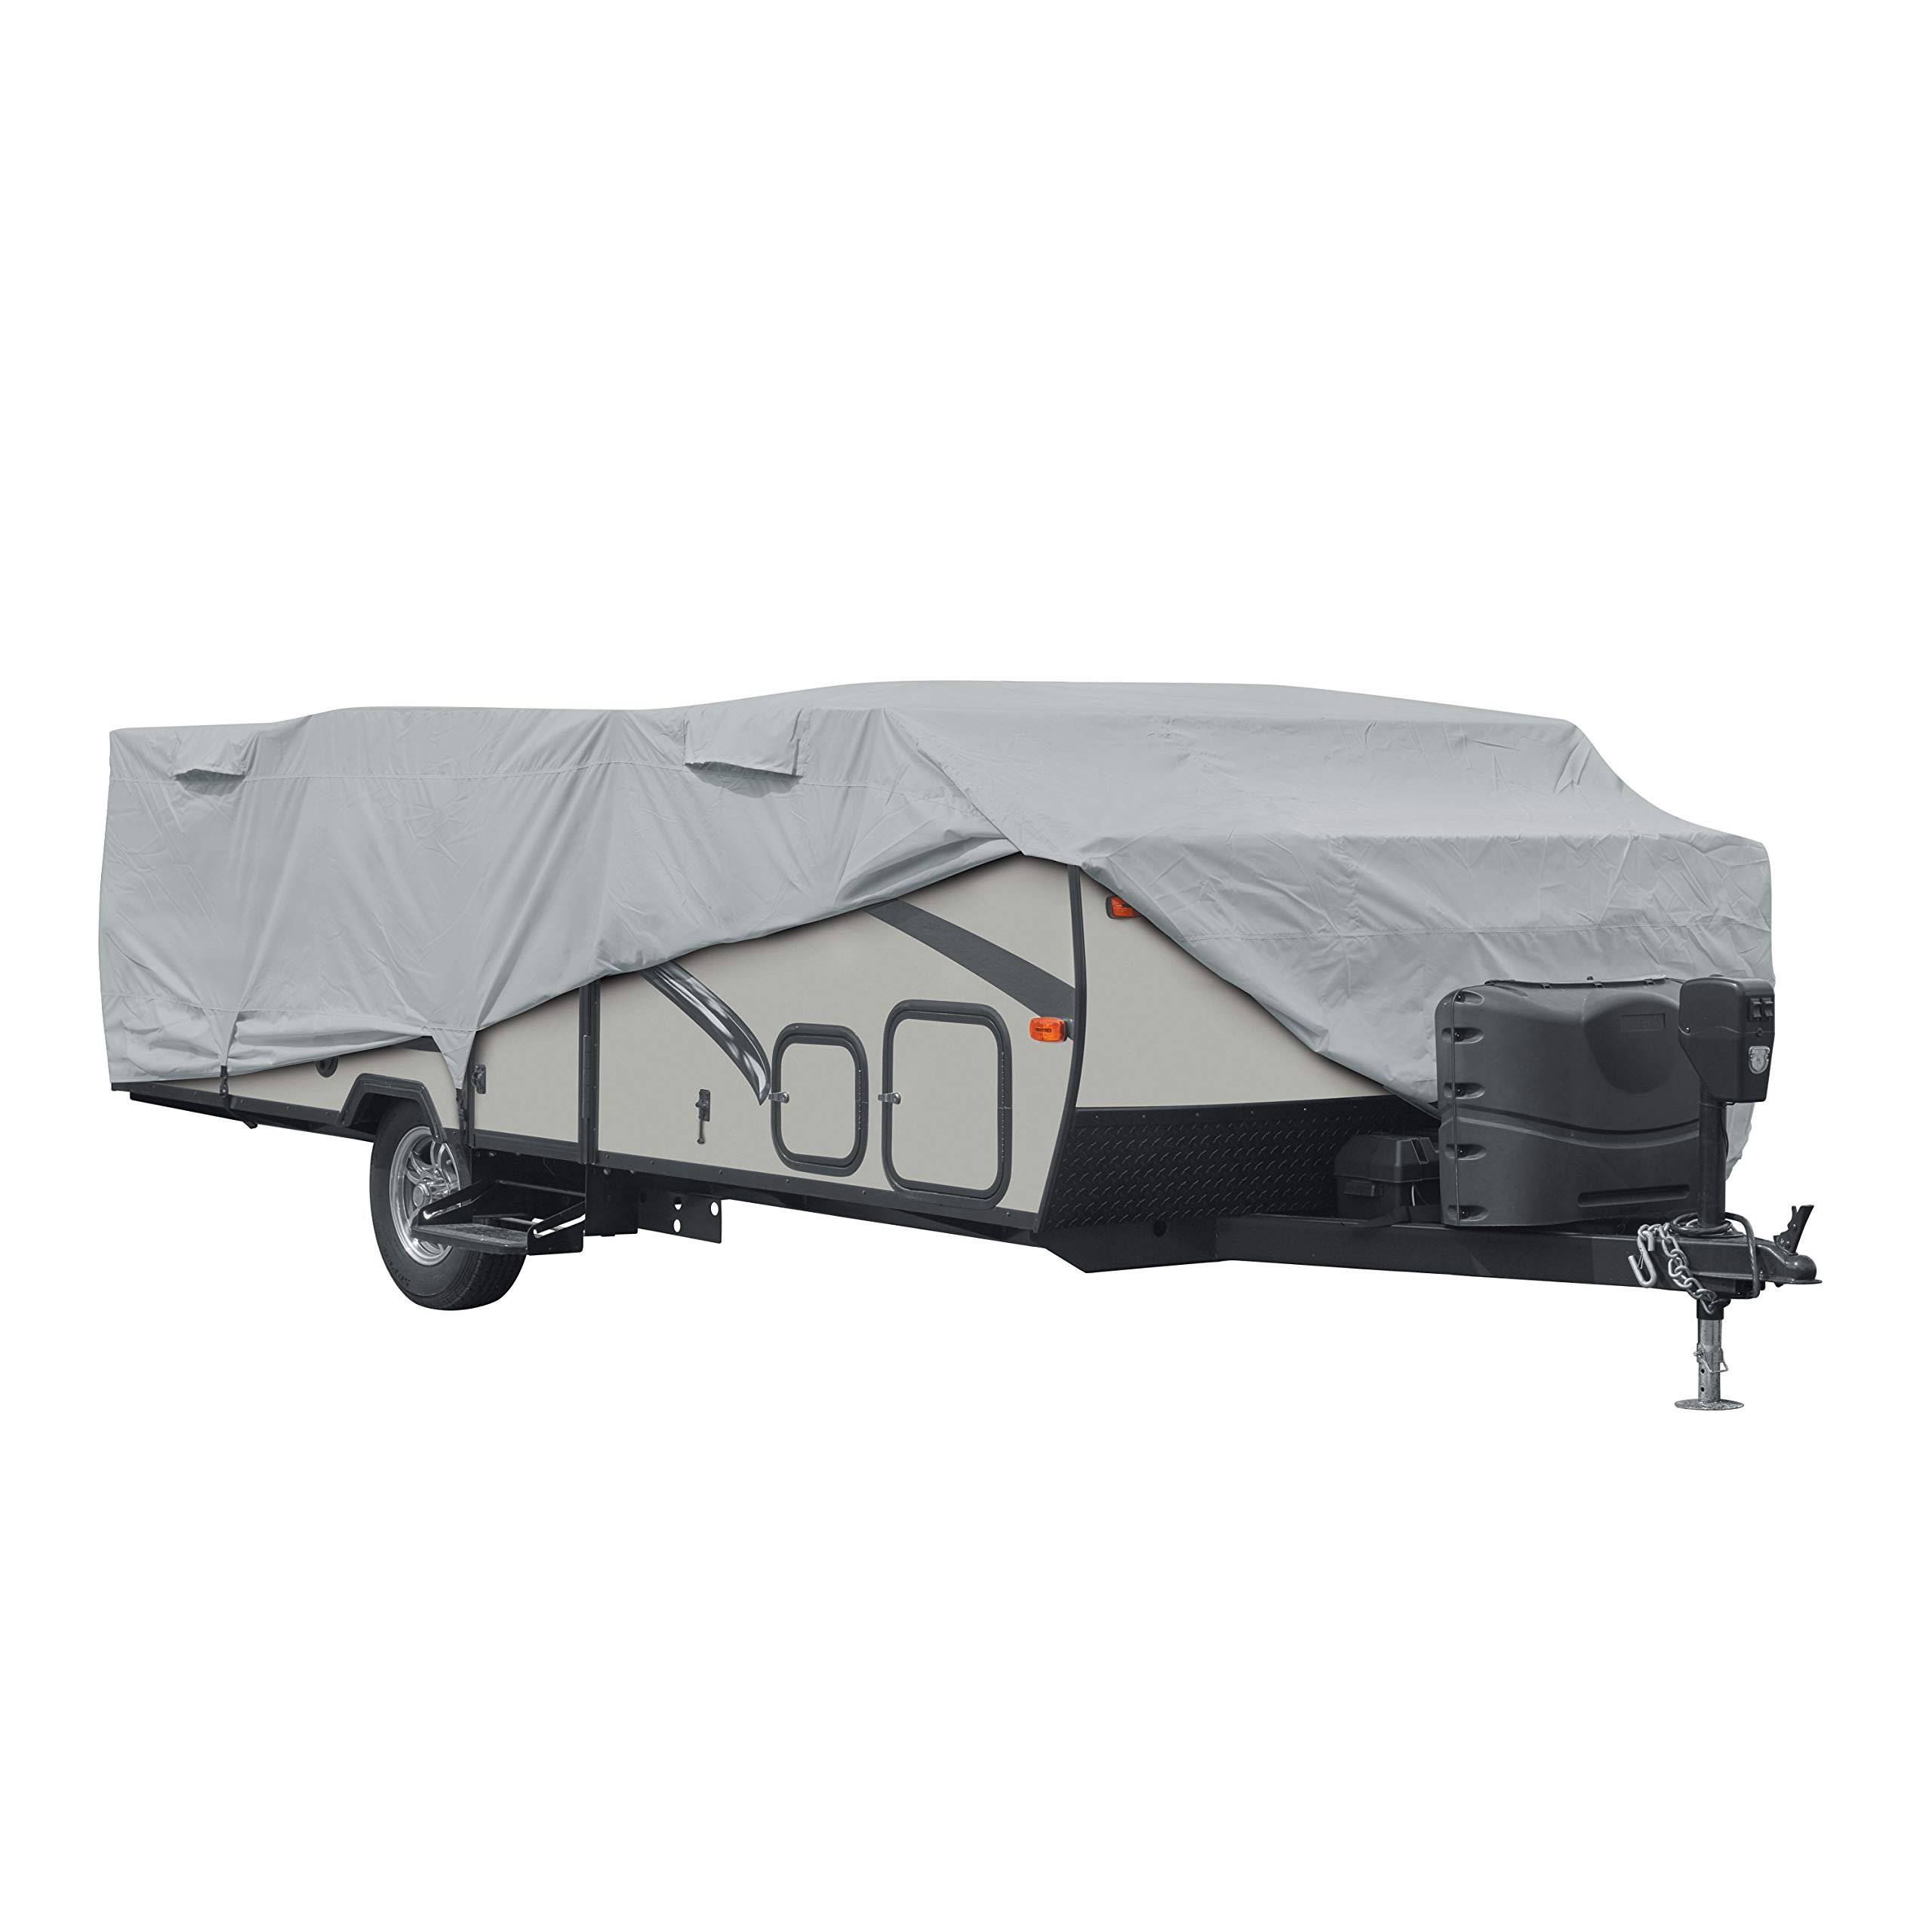 Classic Accessories PermaPro RV Cover for 18'-20' Long Folding Camping Trailers by Classic Accessories (Image #1)